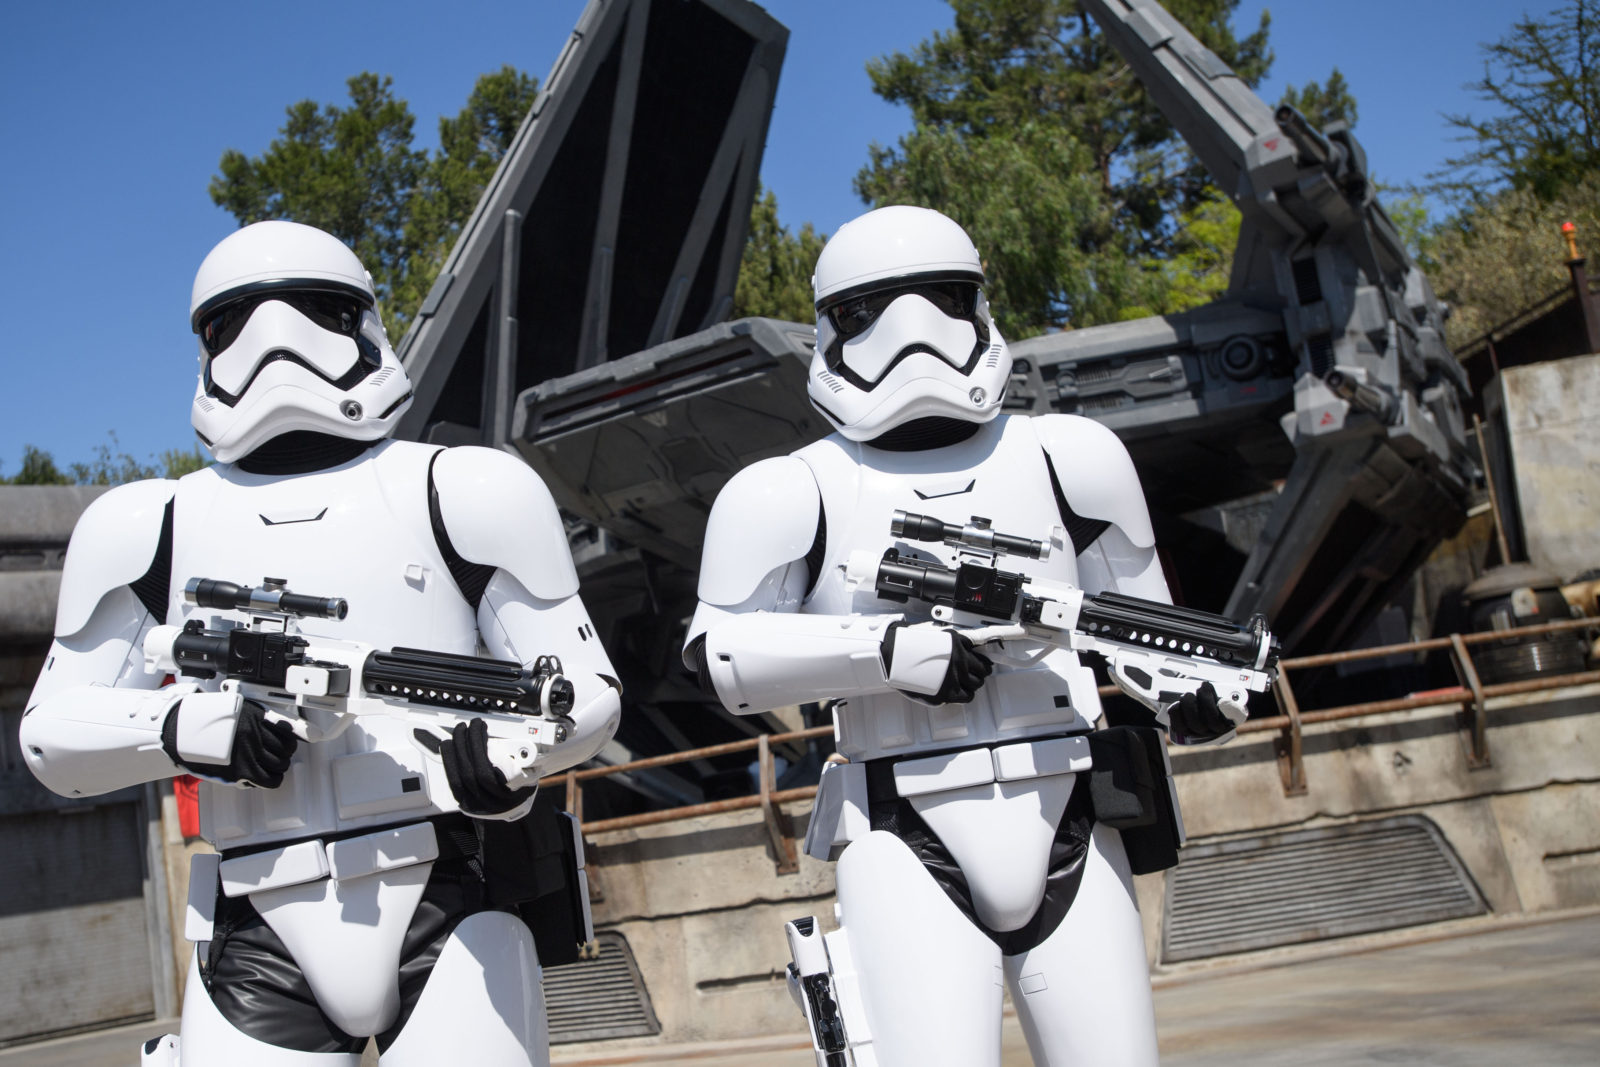 Star Wars: Galaxy's Edge Batuu Disney's Hollywood Studios Stormtroopers